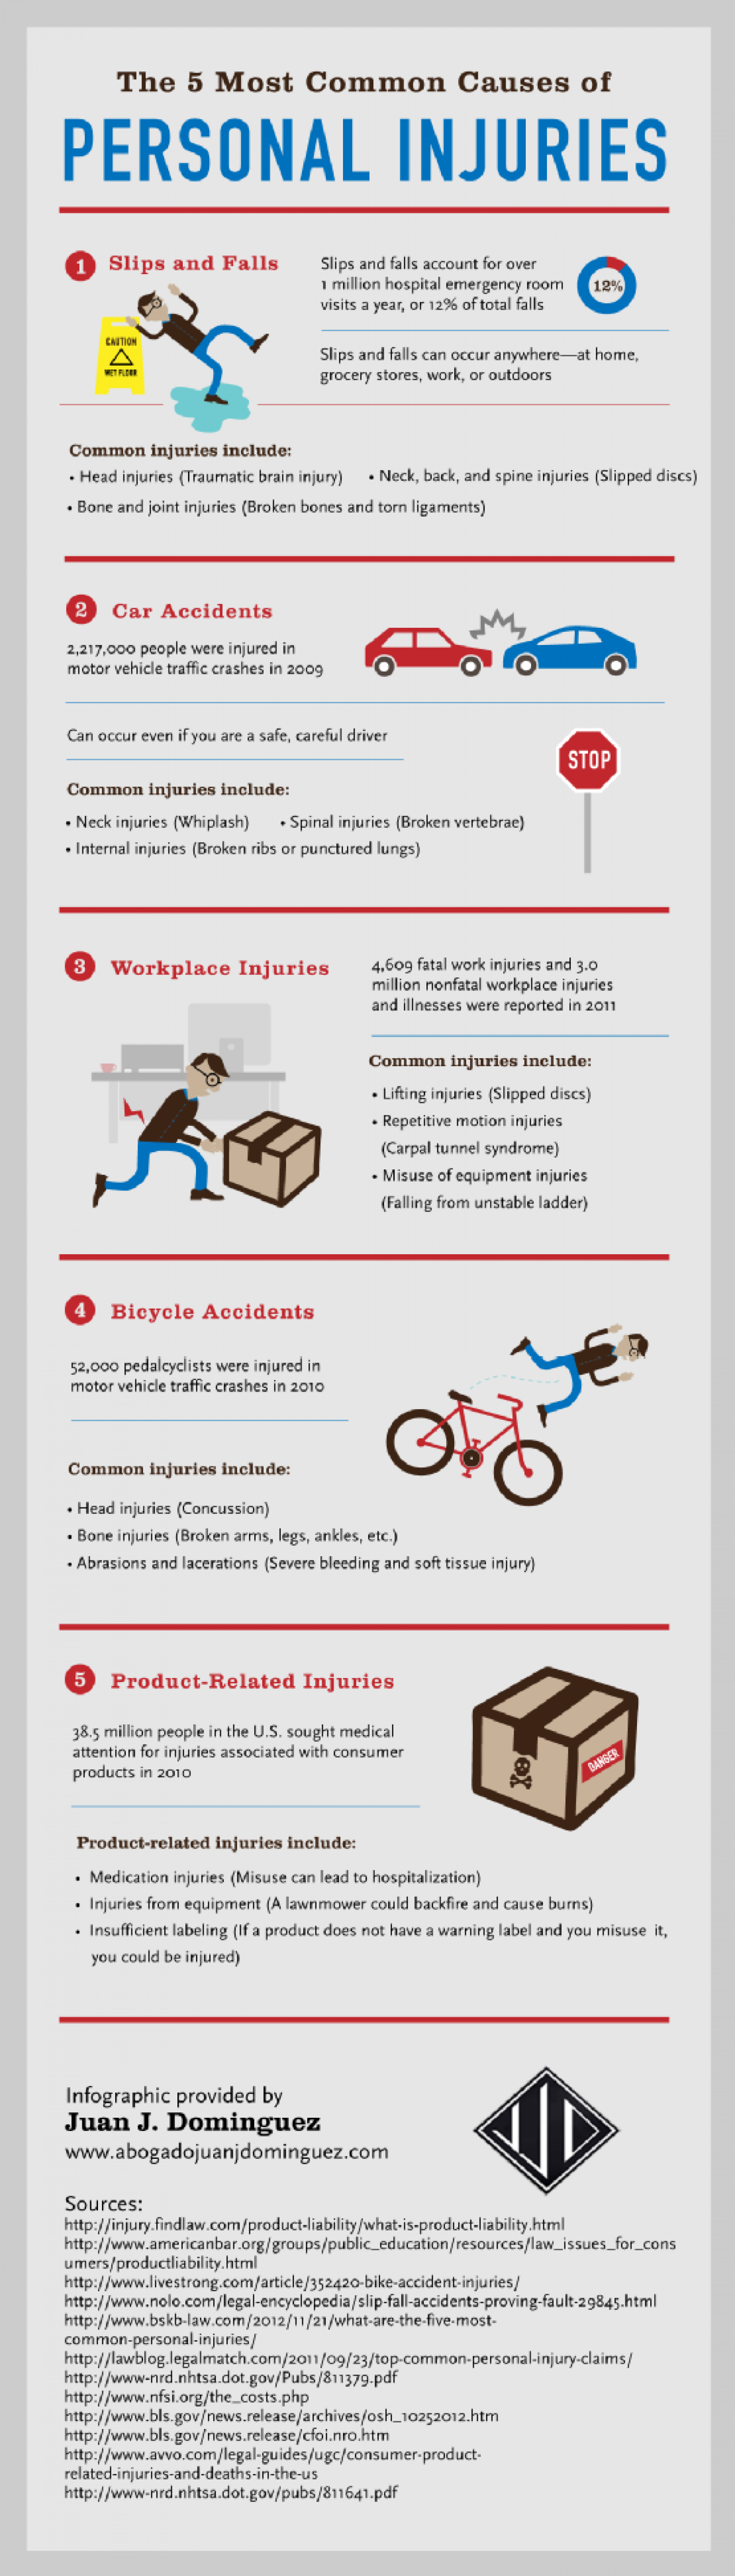 The 5 Most Common Causes of Personal Injuries Infographic